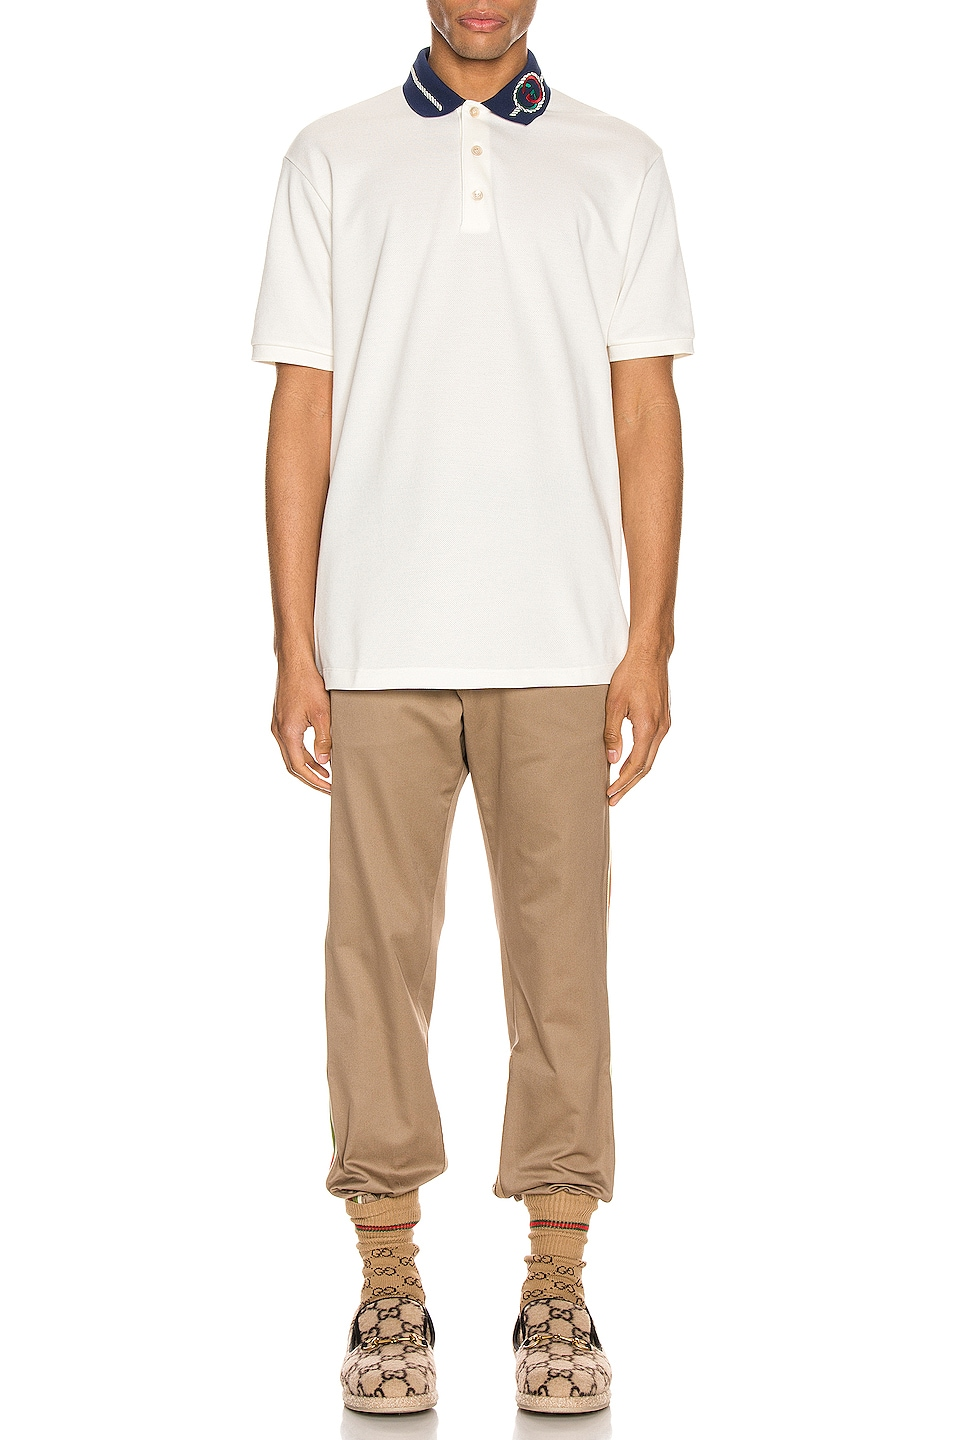 Image 5 of Gucci Cotton Polo With Interlocking G Torchon in Off-White & MC